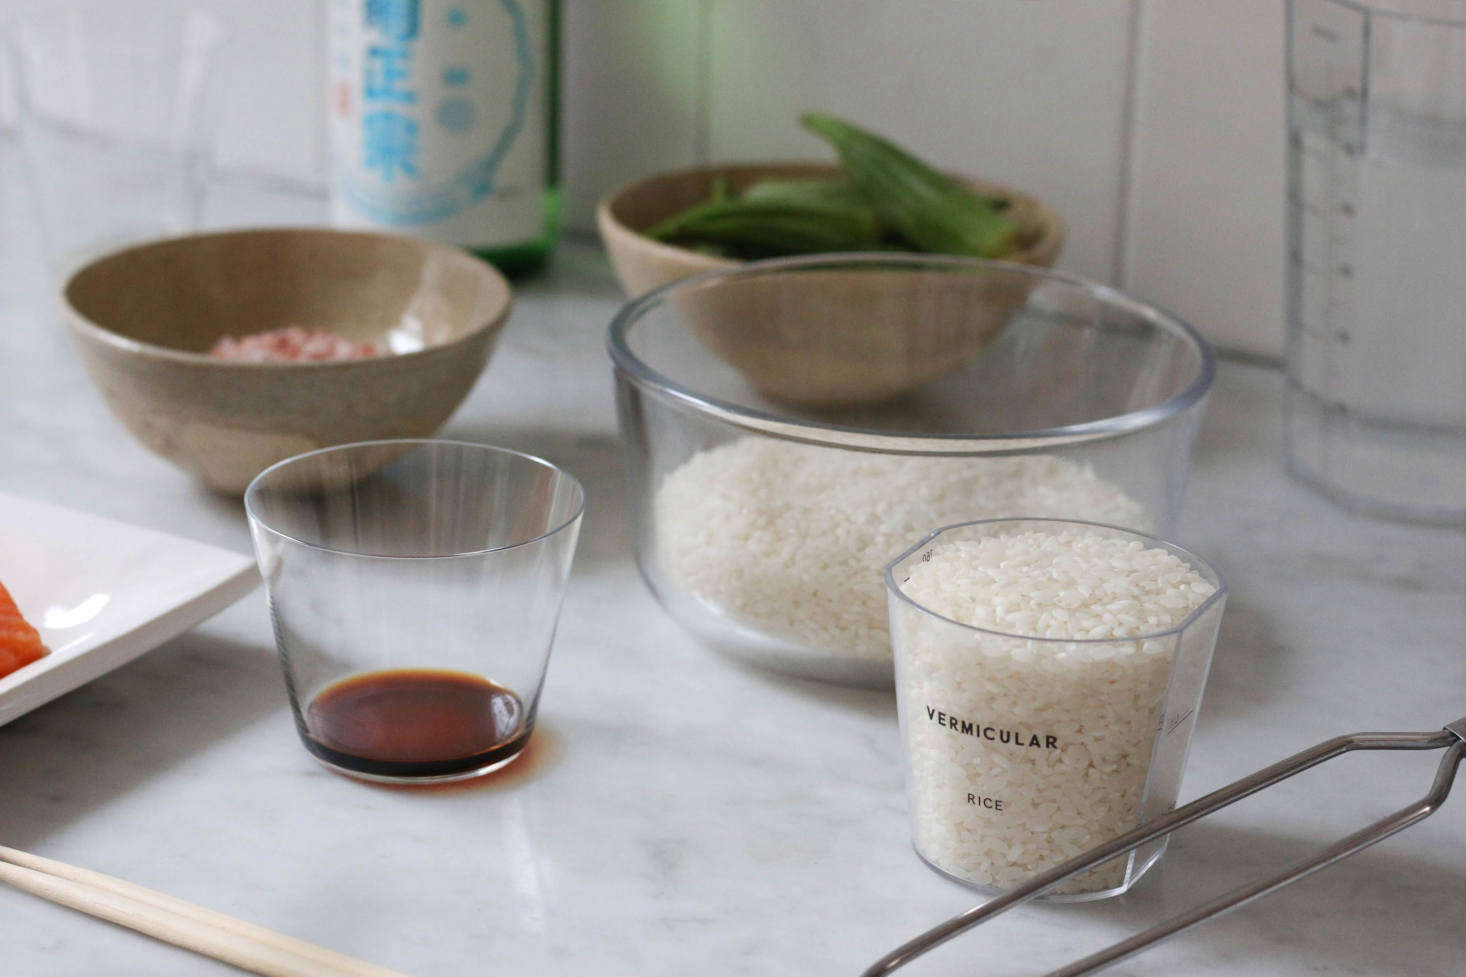 Rinsing the rice before cooking it is key. Measure out 3 cups (540 ml) of plain white rice and rinse using a mesh strainer before adding to the pot; then add the 5ml of water.